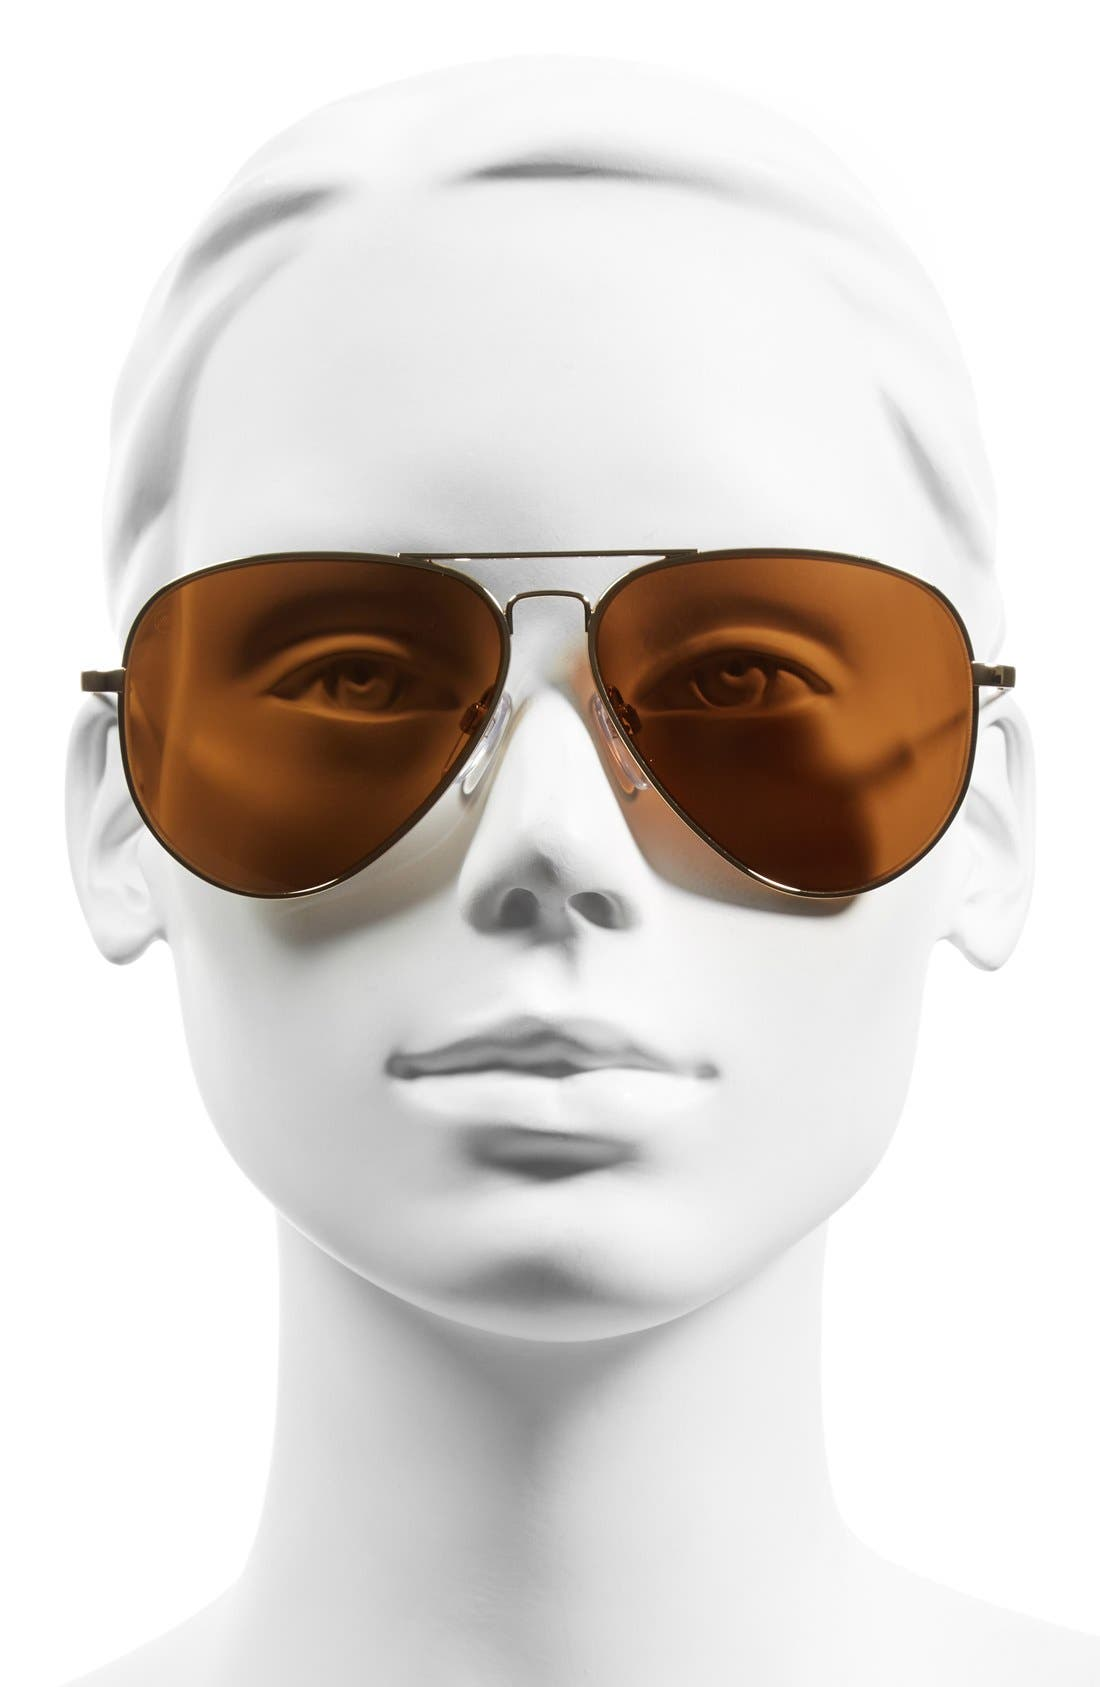 'AV1 XL' 62mm Aviator Sunglasses,                             Alternate thumbnail 2, color,                             GOLD/ BRONZE